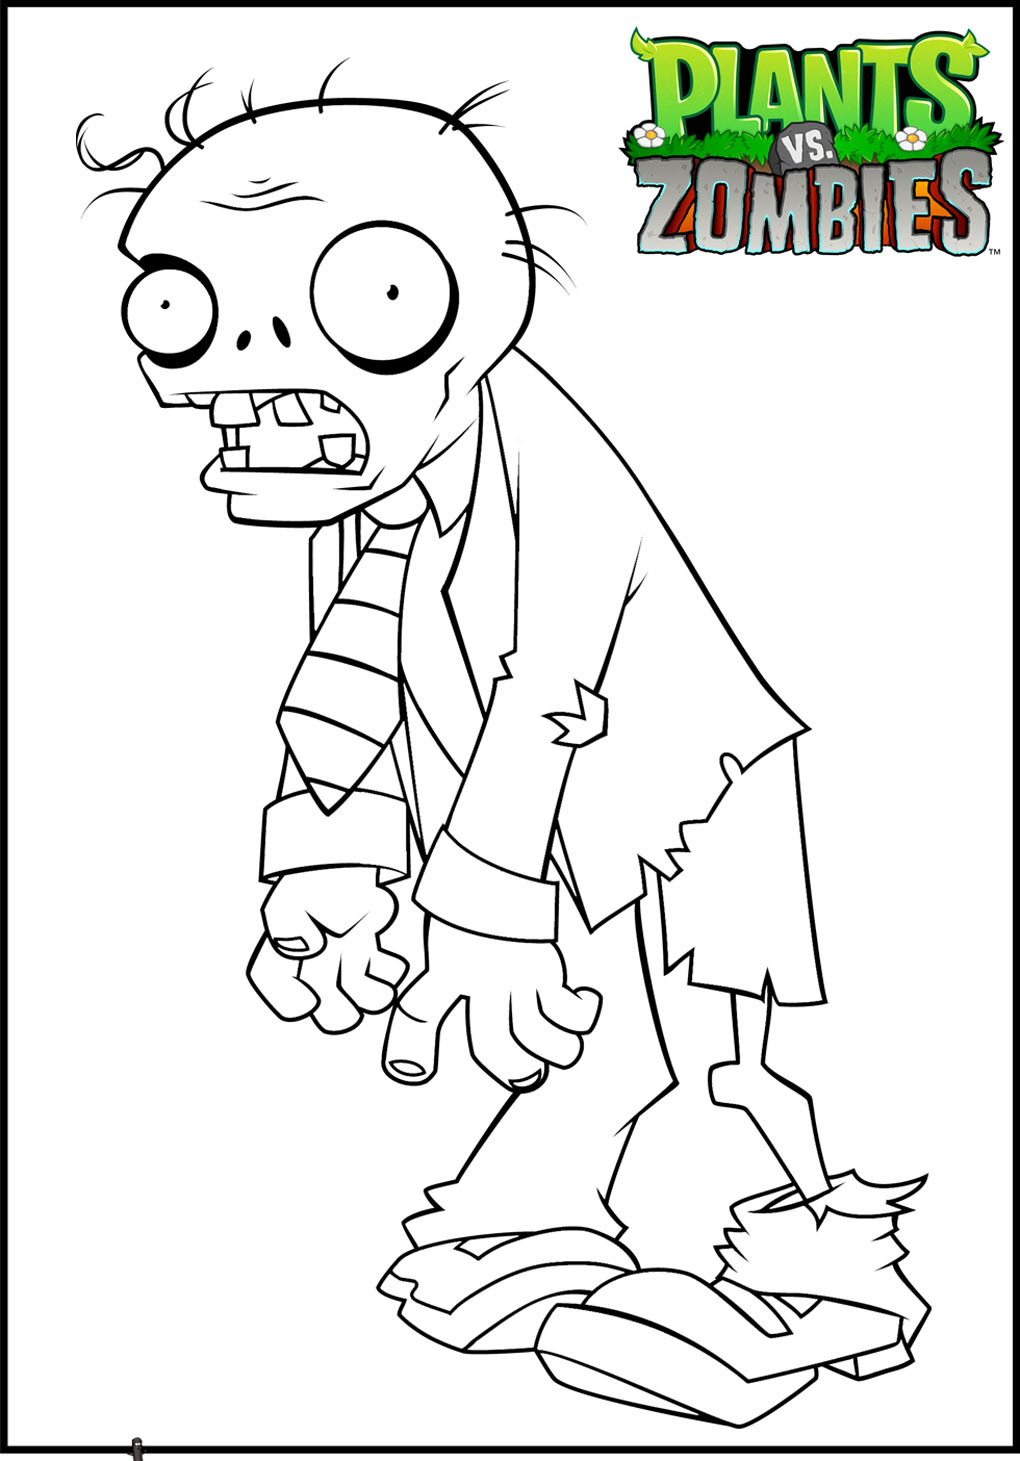 Free Plants Vs Zombies coloring page to print and color, for kids